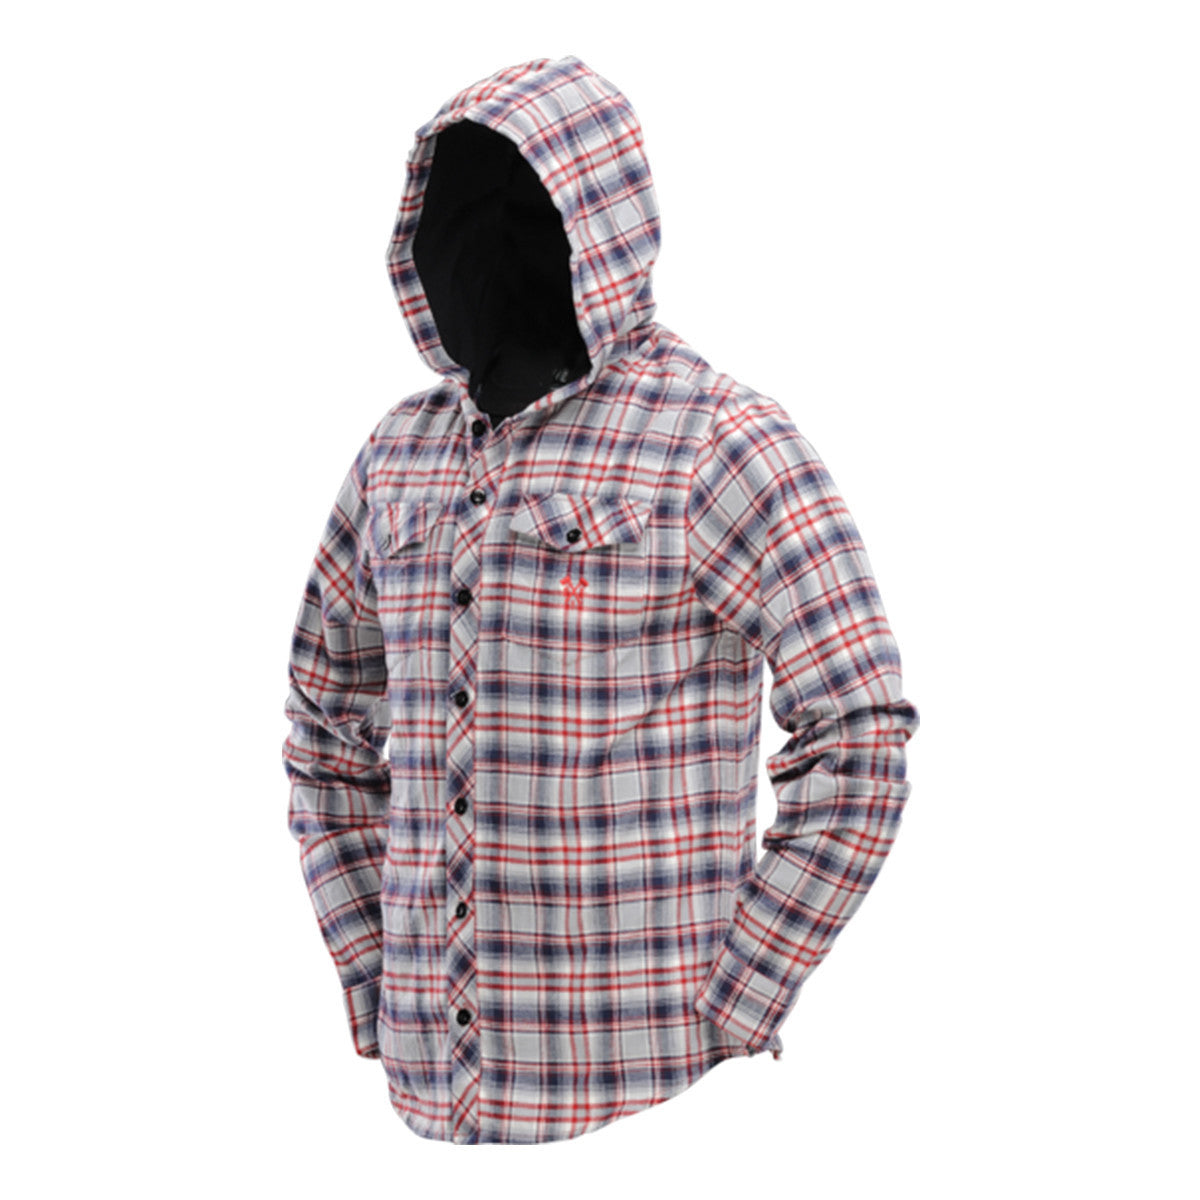 Hooded Flannel   Gray   Red   punisherspb.myshopify.com